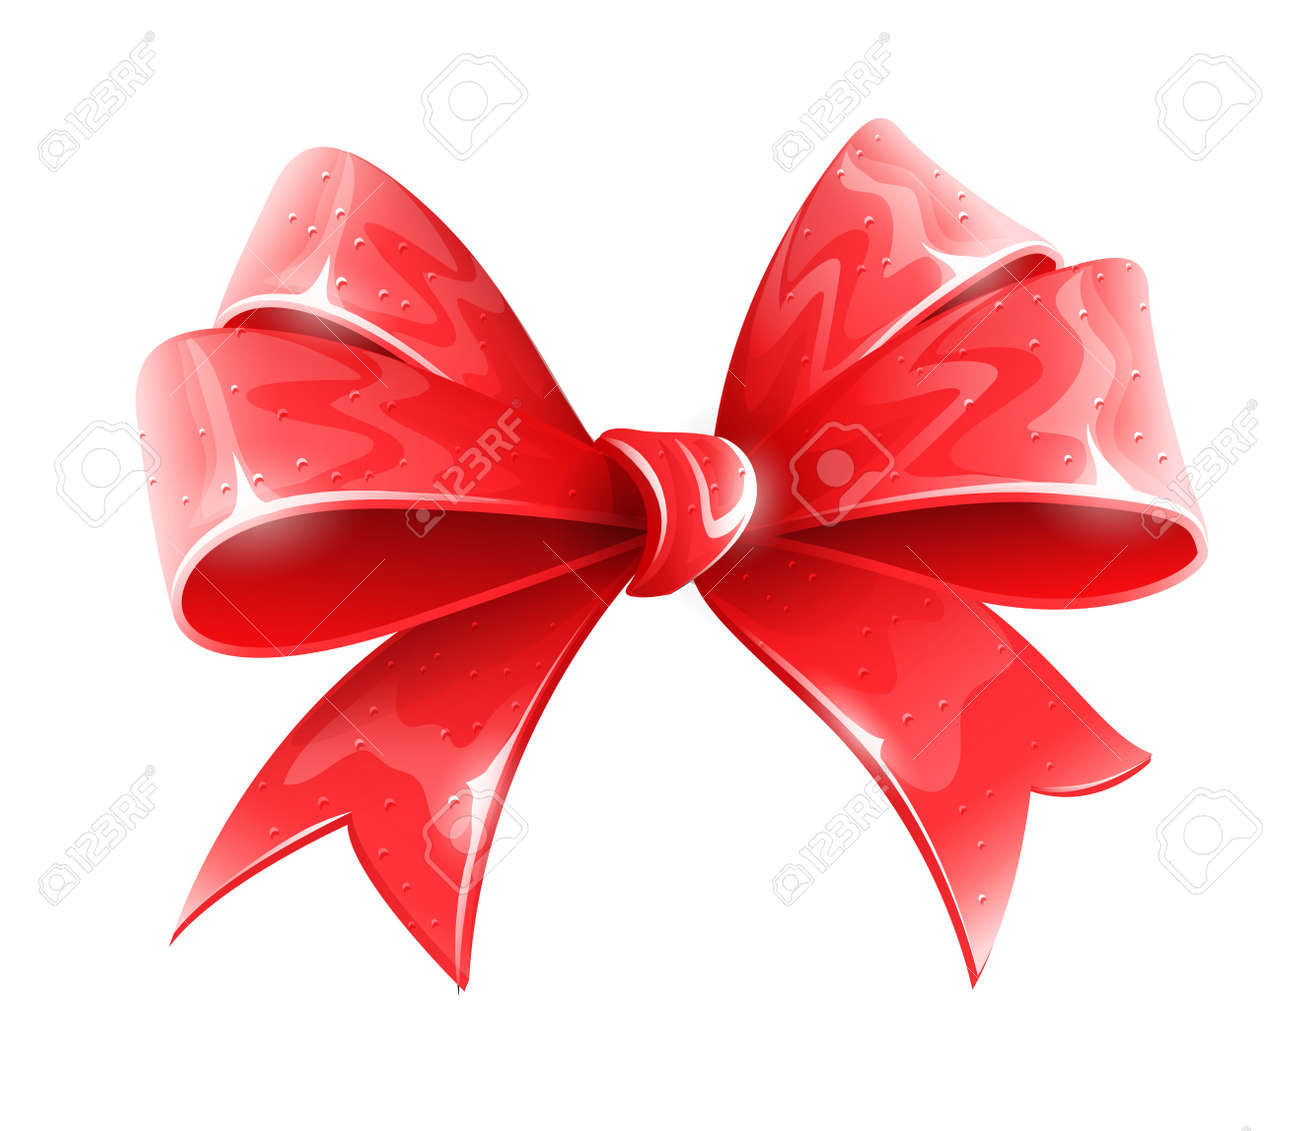 Red bow for holiday gift decoration vector illustration isolated red bow for holiday gift decoration vector illustration isolated on white background eps10 transparent objects negle Choice Image